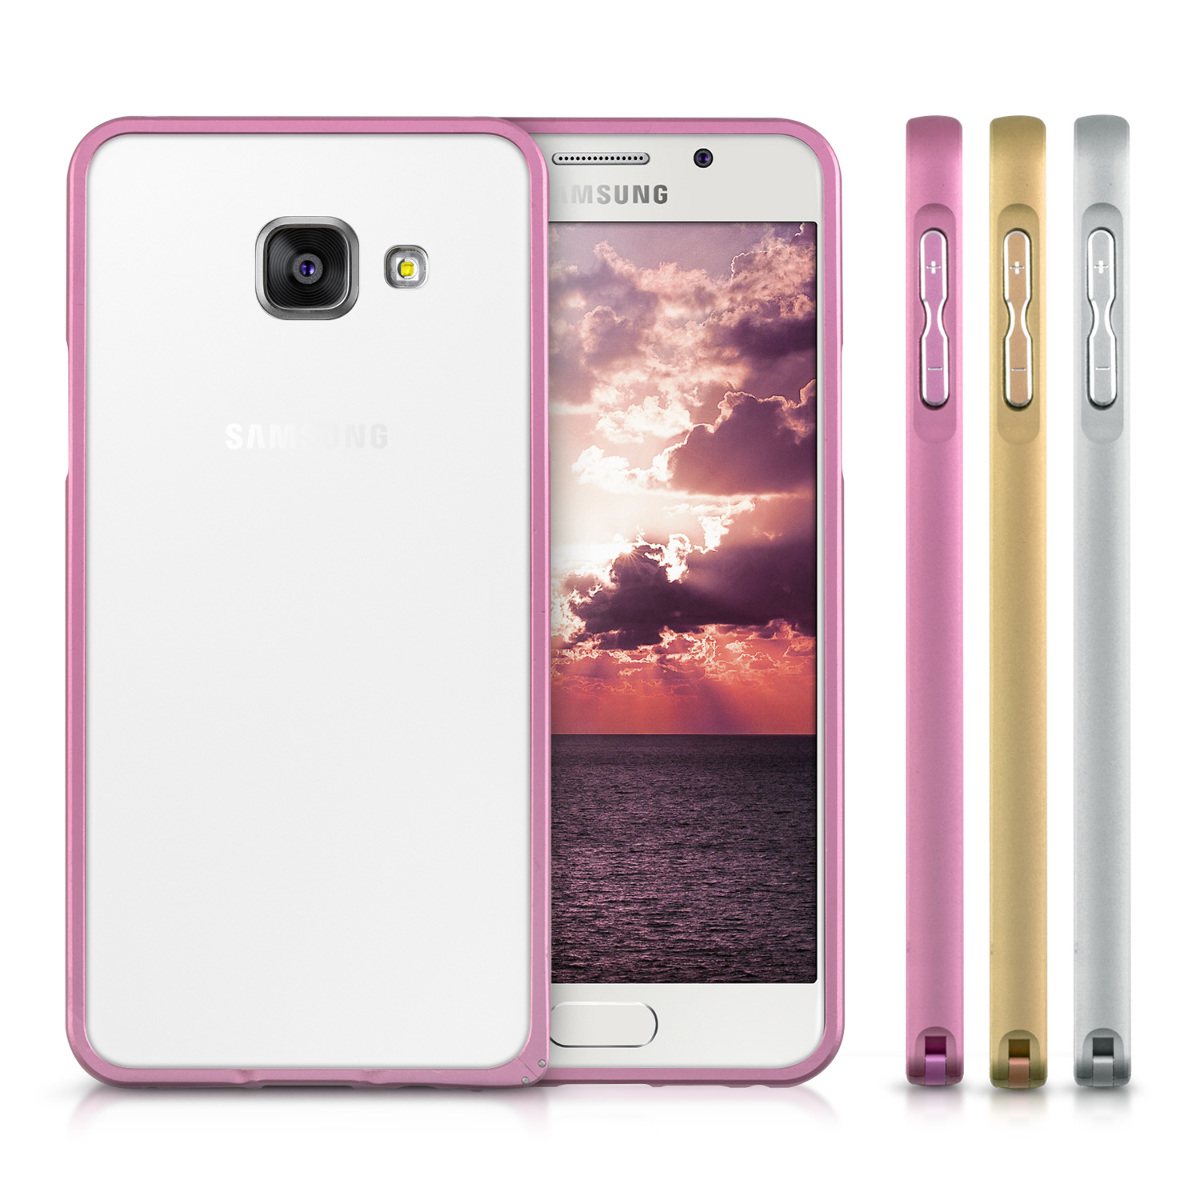 Metal Bumper For Samsung Galaxy A3 2016 Ultra Slim Case Alu Hard Motomo Xiaomi Mi 4i Back Hardcase Color Kwmobile Of Milled Aluminium In Desired Colour Extra Thin And Tough Protection Your Phone